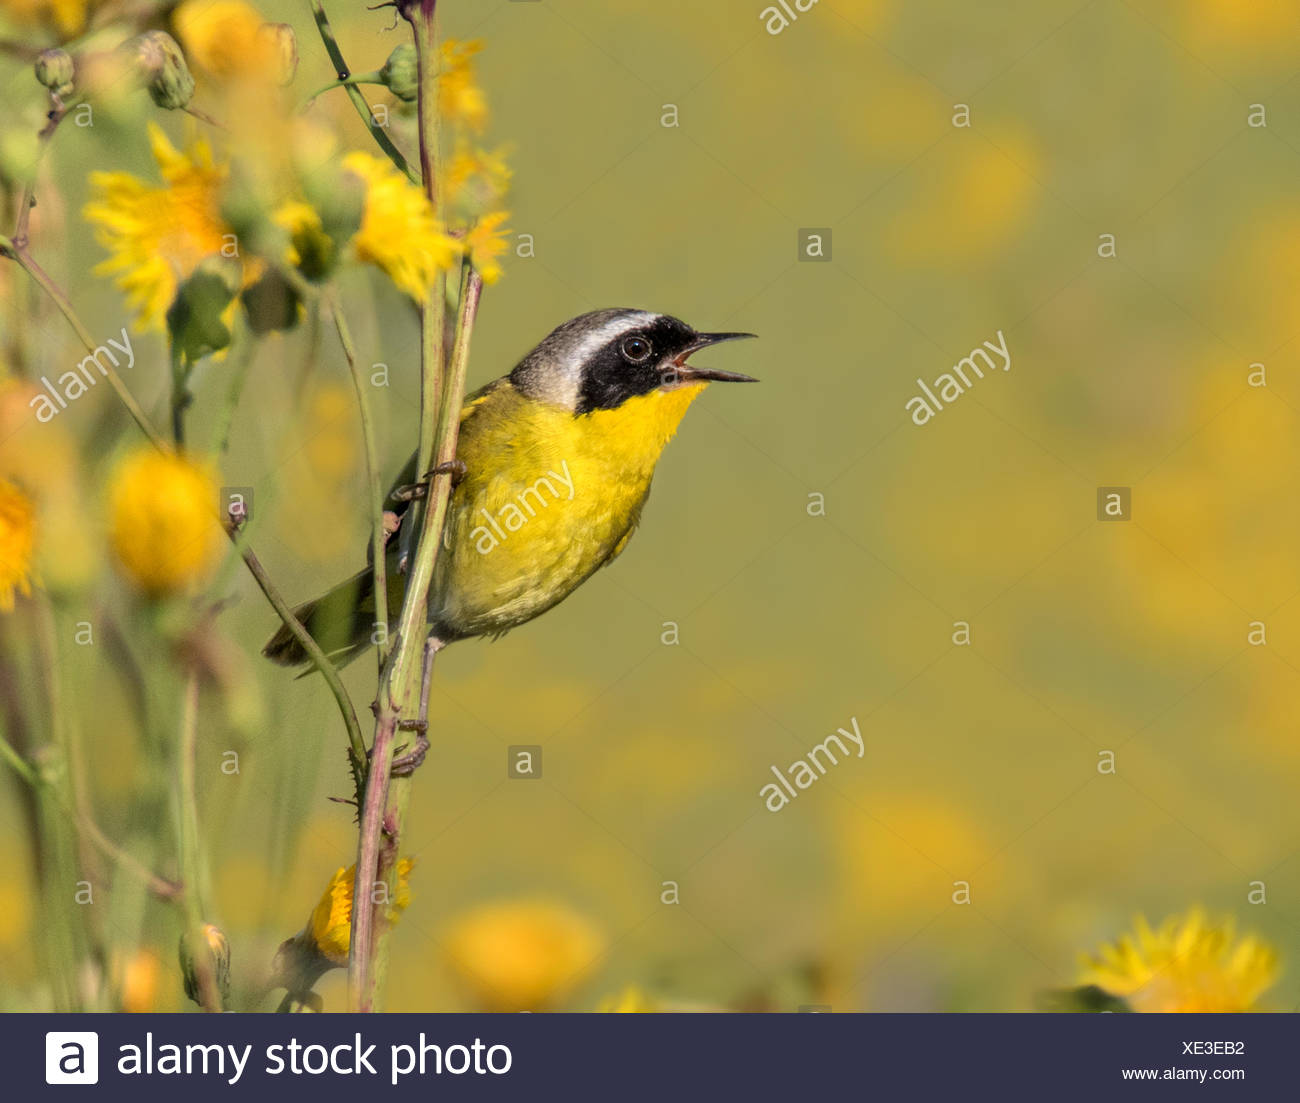 A male Common Yellowthroat, Geothlypis trichas,  sings from a wild flower in a canola field, near Saskatoon,  Canada - Stock Image